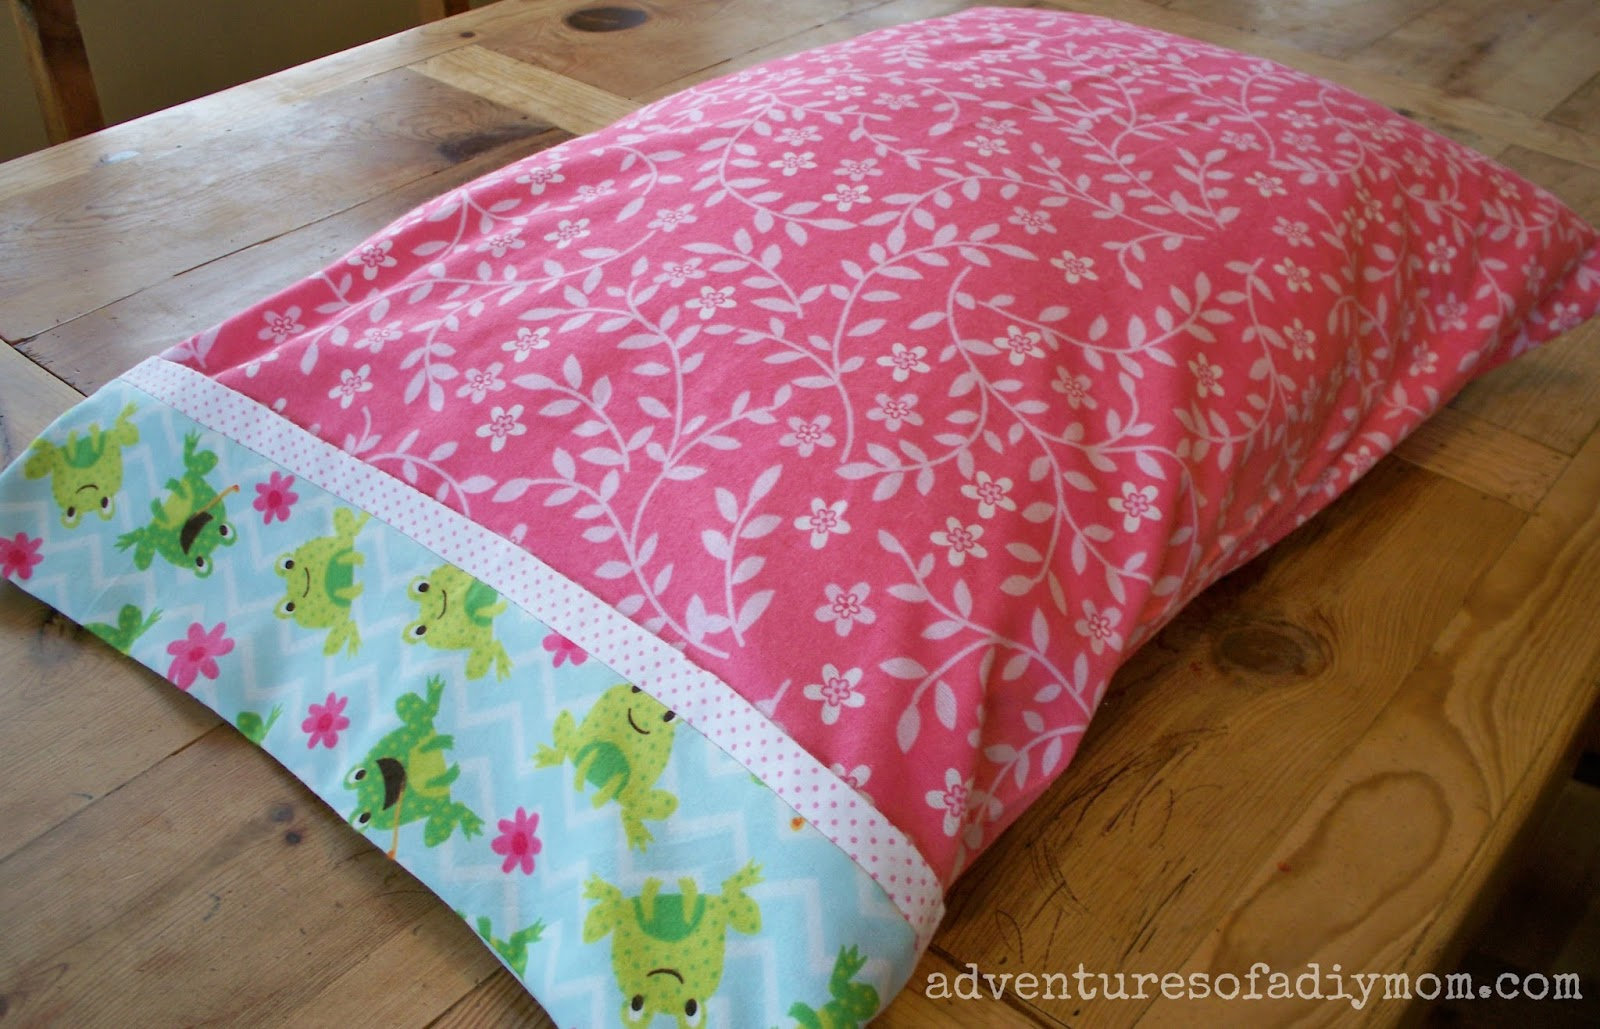 How to Make an Easy Tube Pillowcase with 3 seams